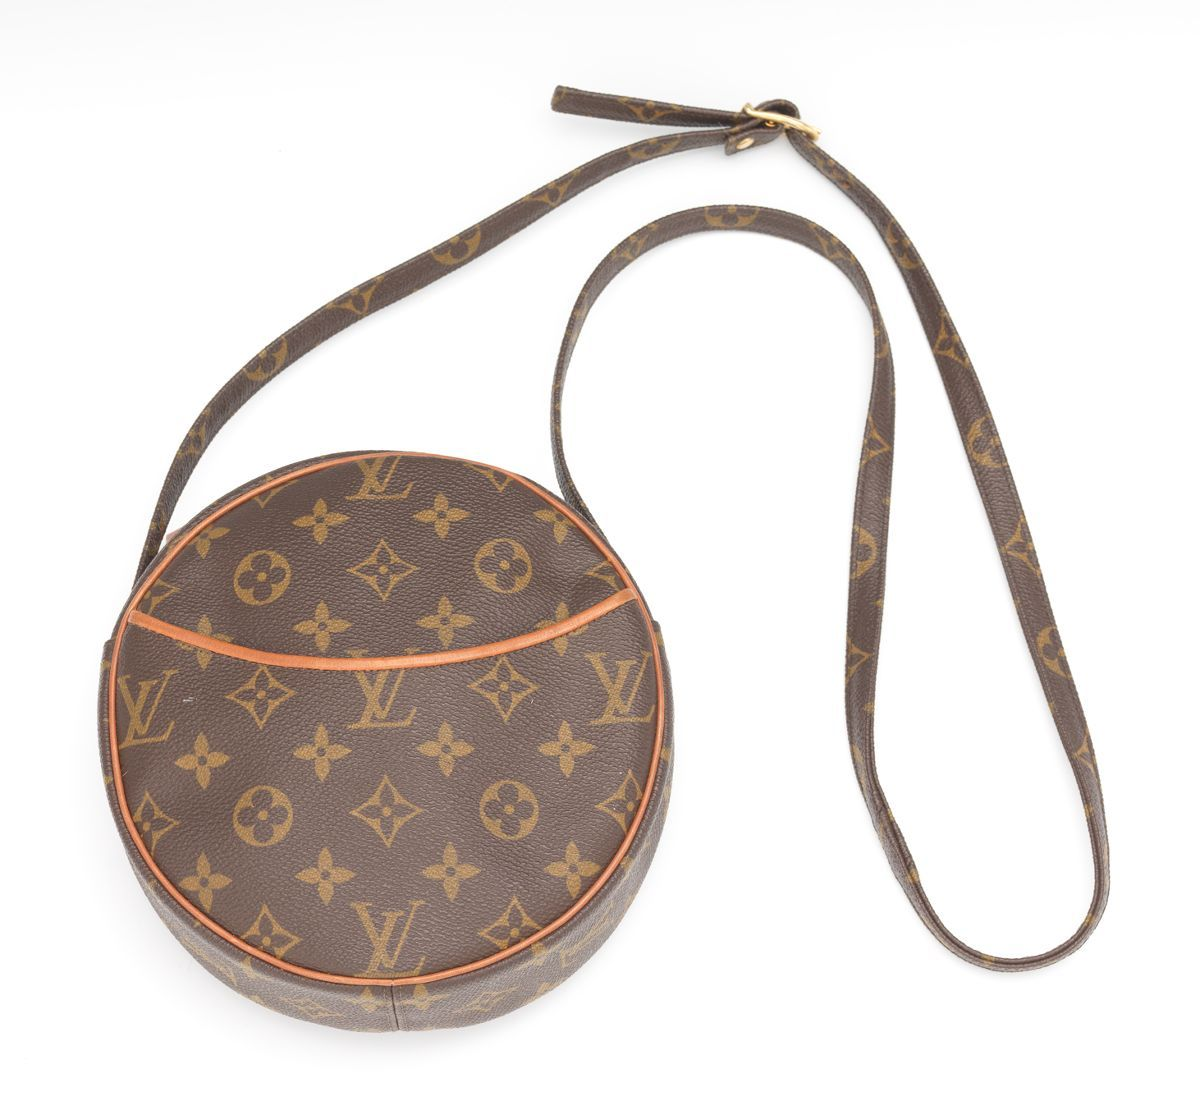 bd44872574eb Louis Vuitton Vintage Monogram Canvas Round Crossbody Bag by French Company